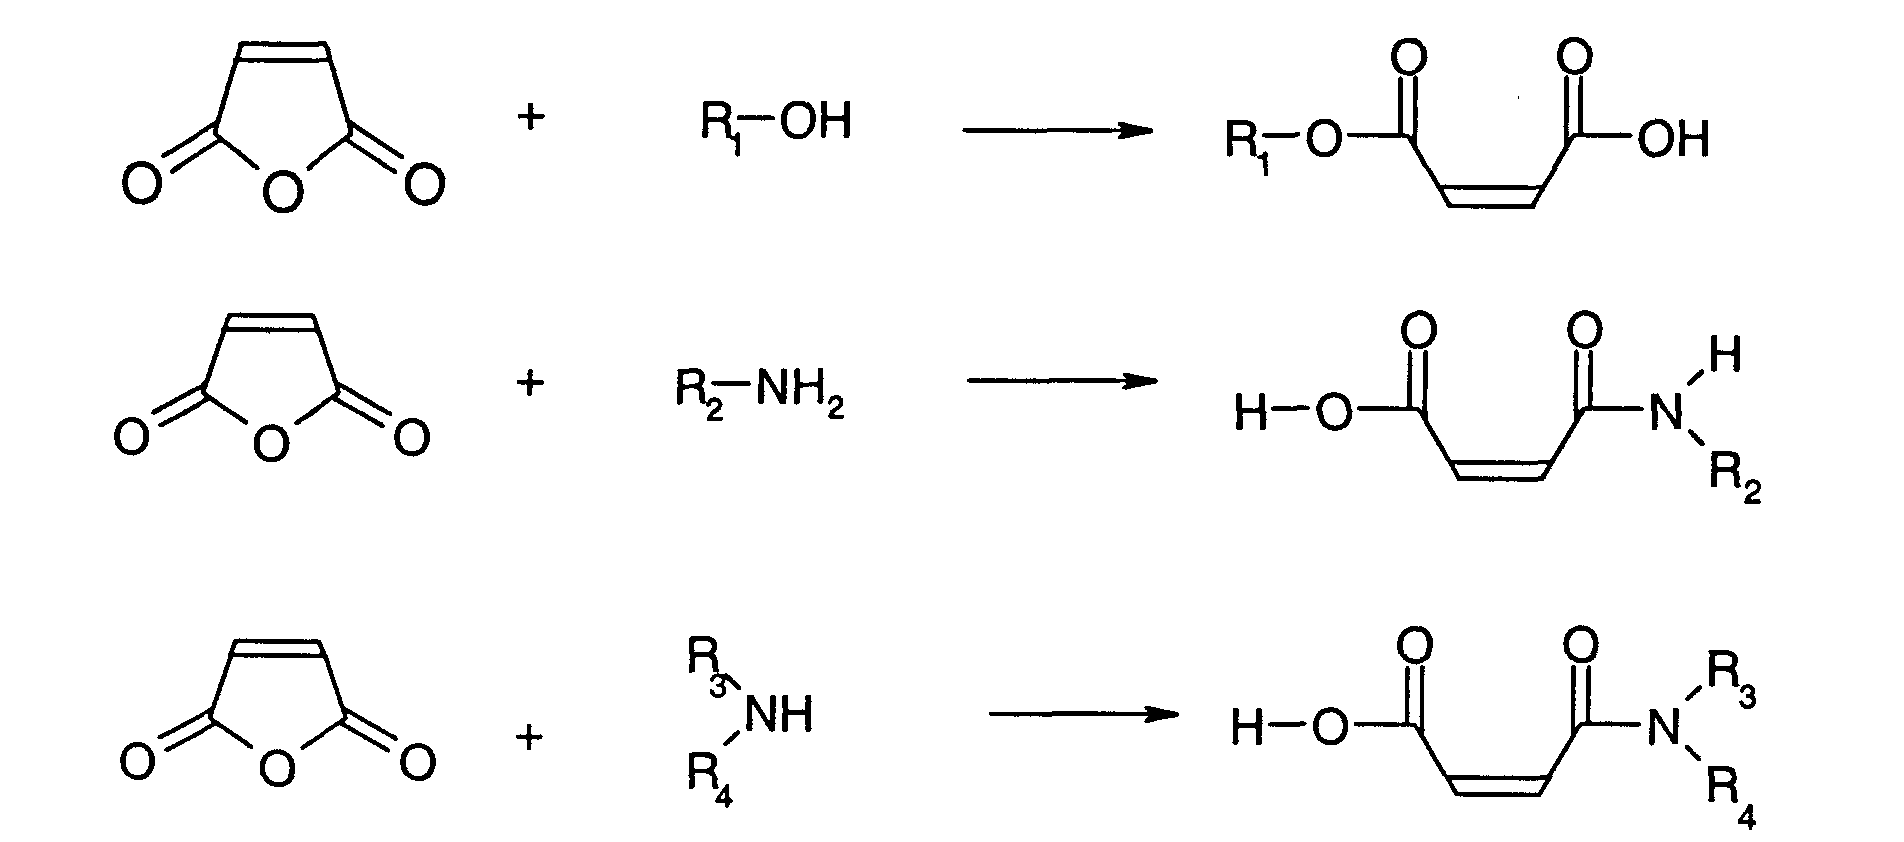 rate of reaction coursework a level The rate of reaction may be increased by: increasing temperature increasing concentration of reactants increasing surface area many reactions are subject to kinetic control for example.